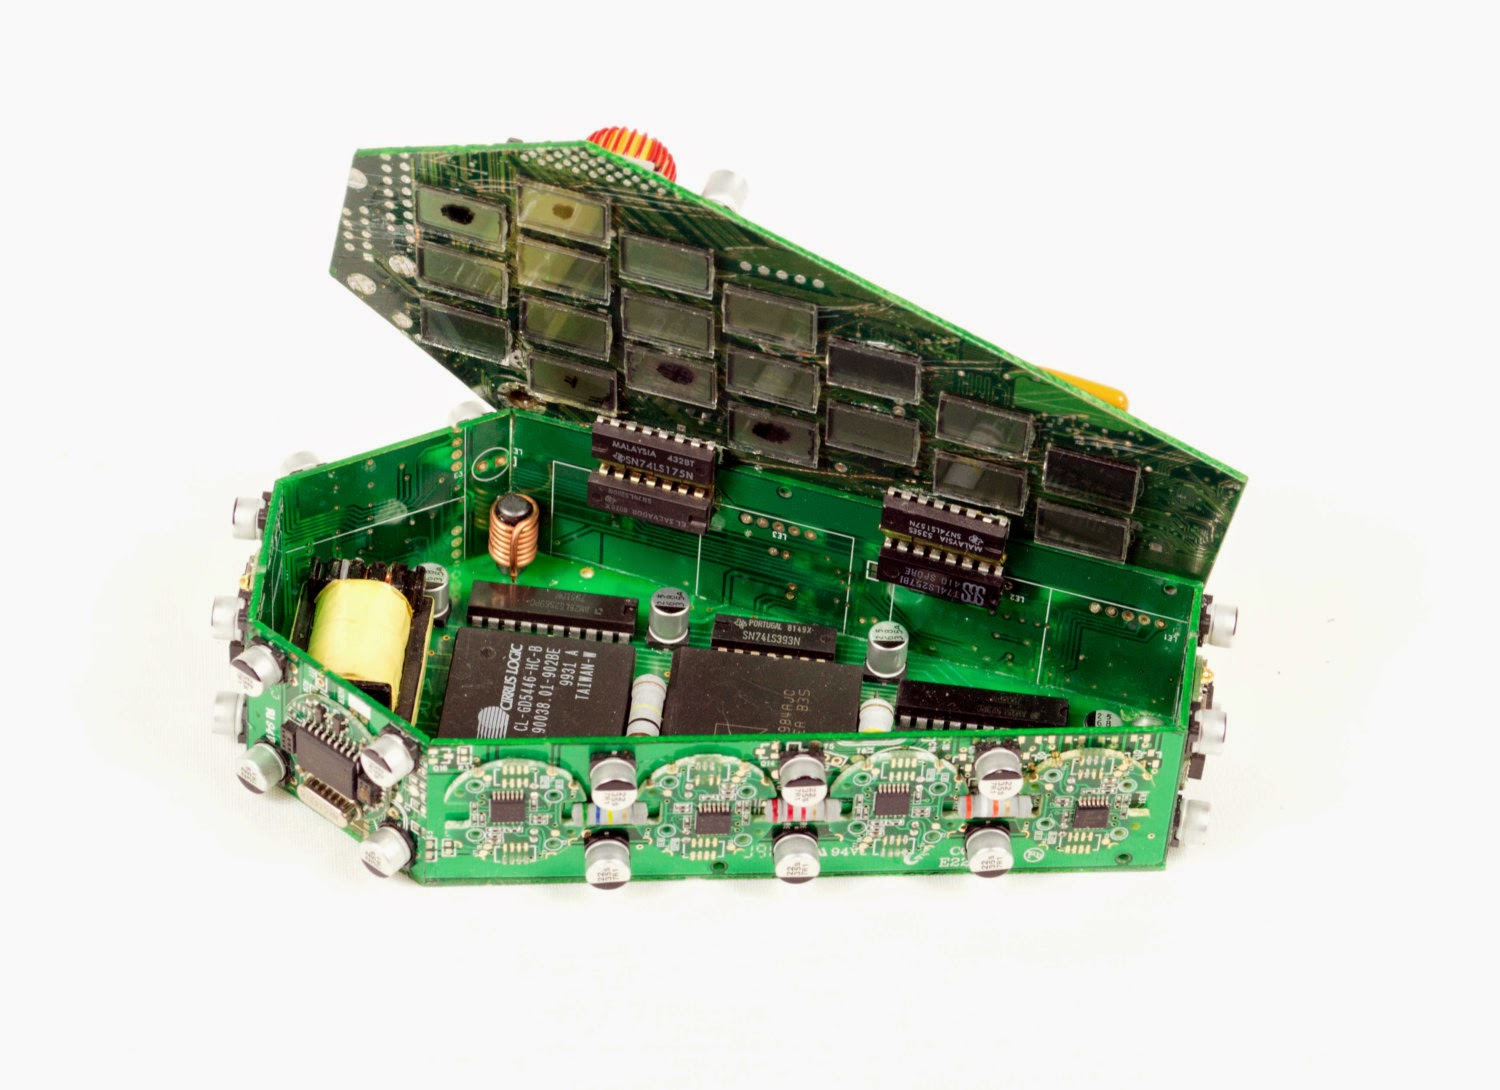 07-Coffin-2-Steven-Rodrig-Upcycle-PCB-Sculptures-from-used-Electronics-www-designstack-co